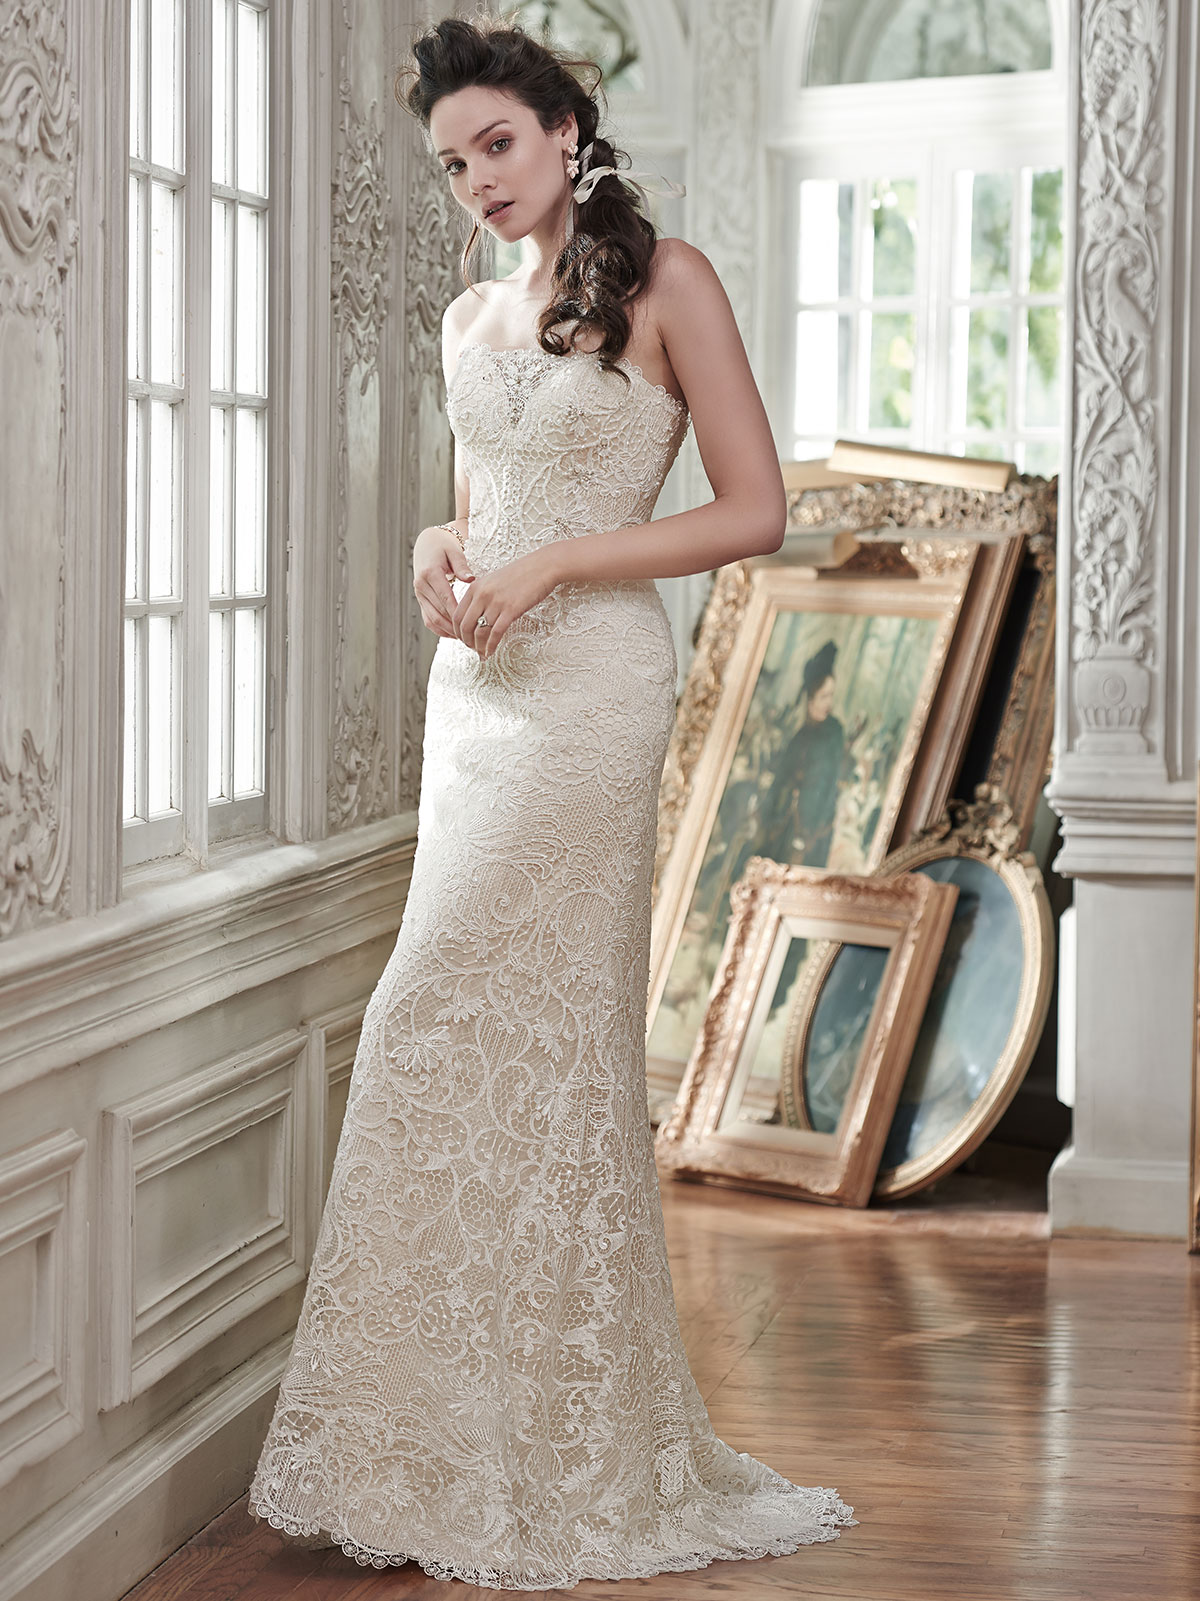 Maggie Sottero Clara Strapless Lace Bridal Gown